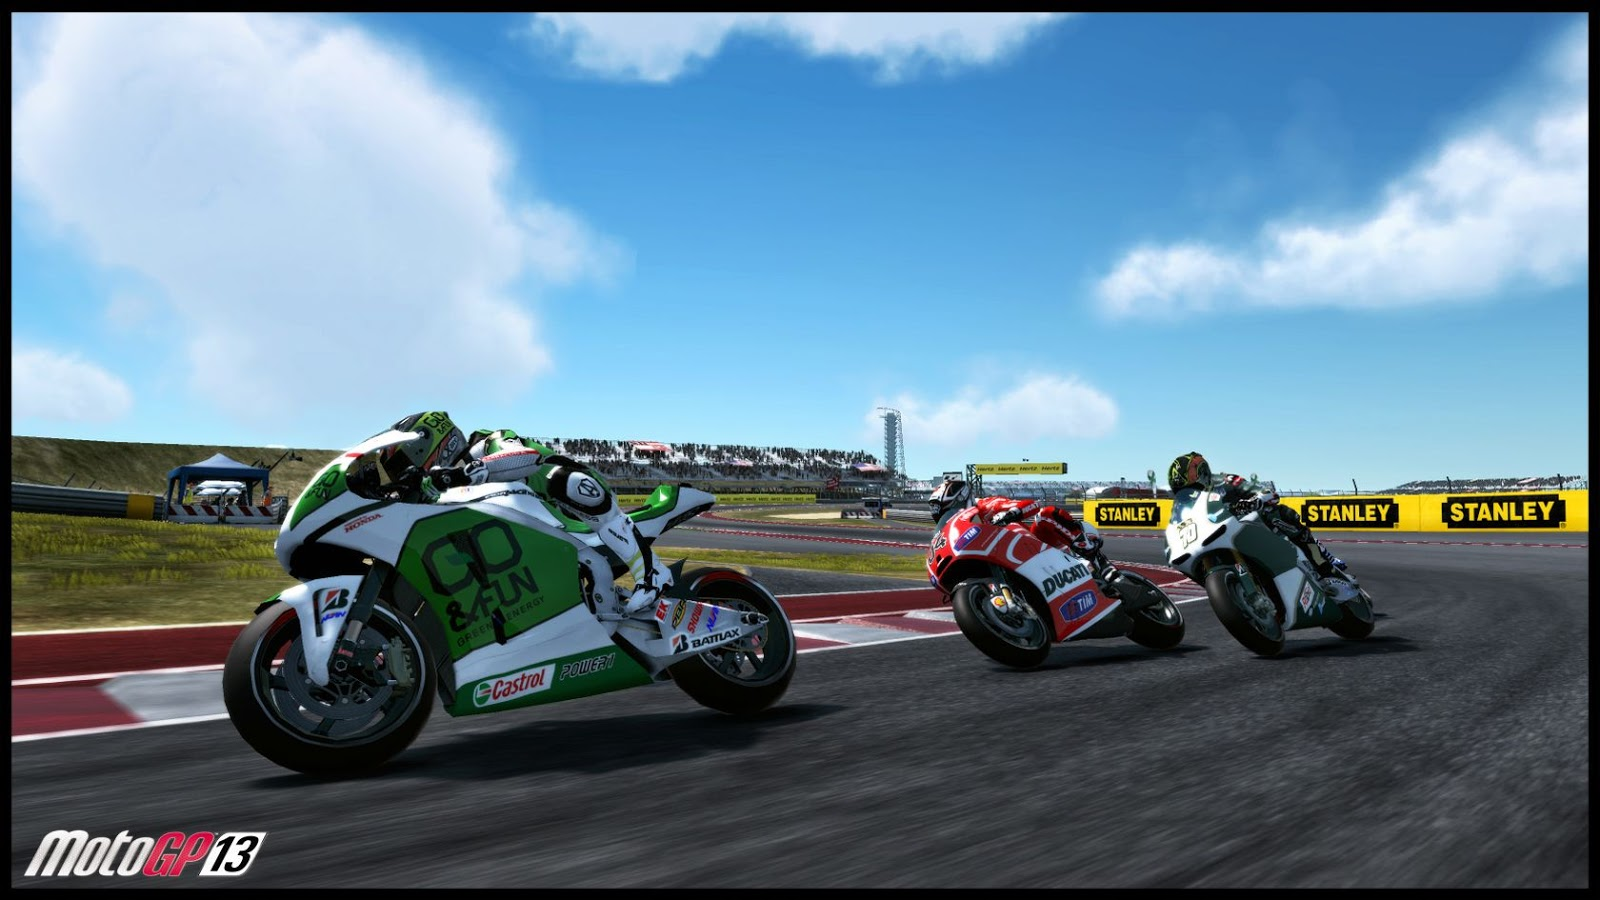 Motogp 13 free download pc game full version | free download pc games and softwares full version